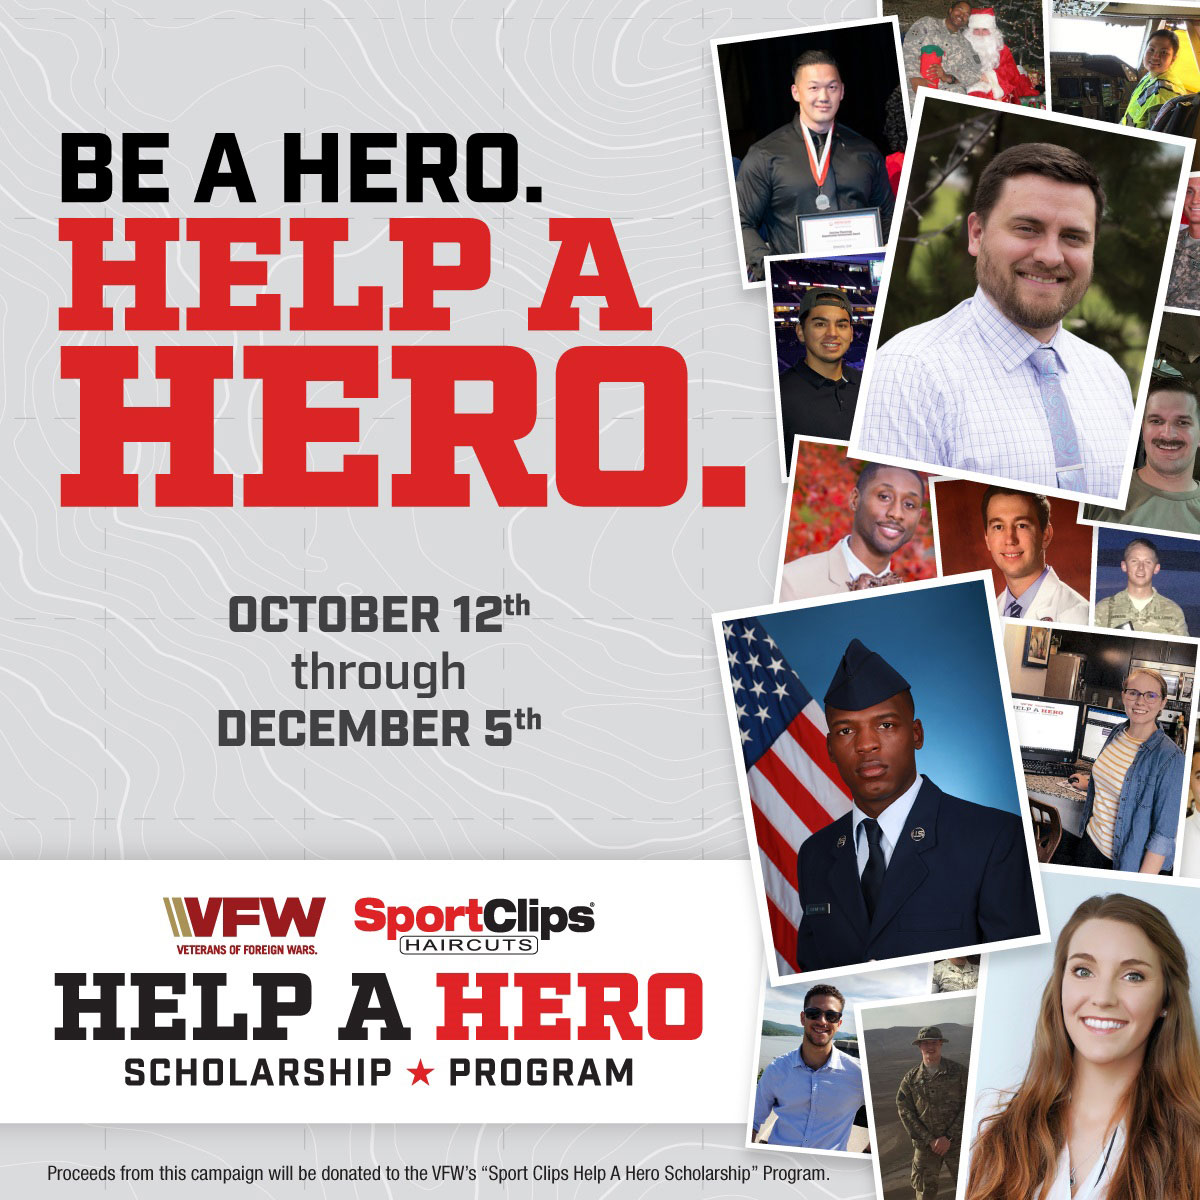 Sport Clips Continues to Support Help a Hero Scholarship Program for Military Veterans